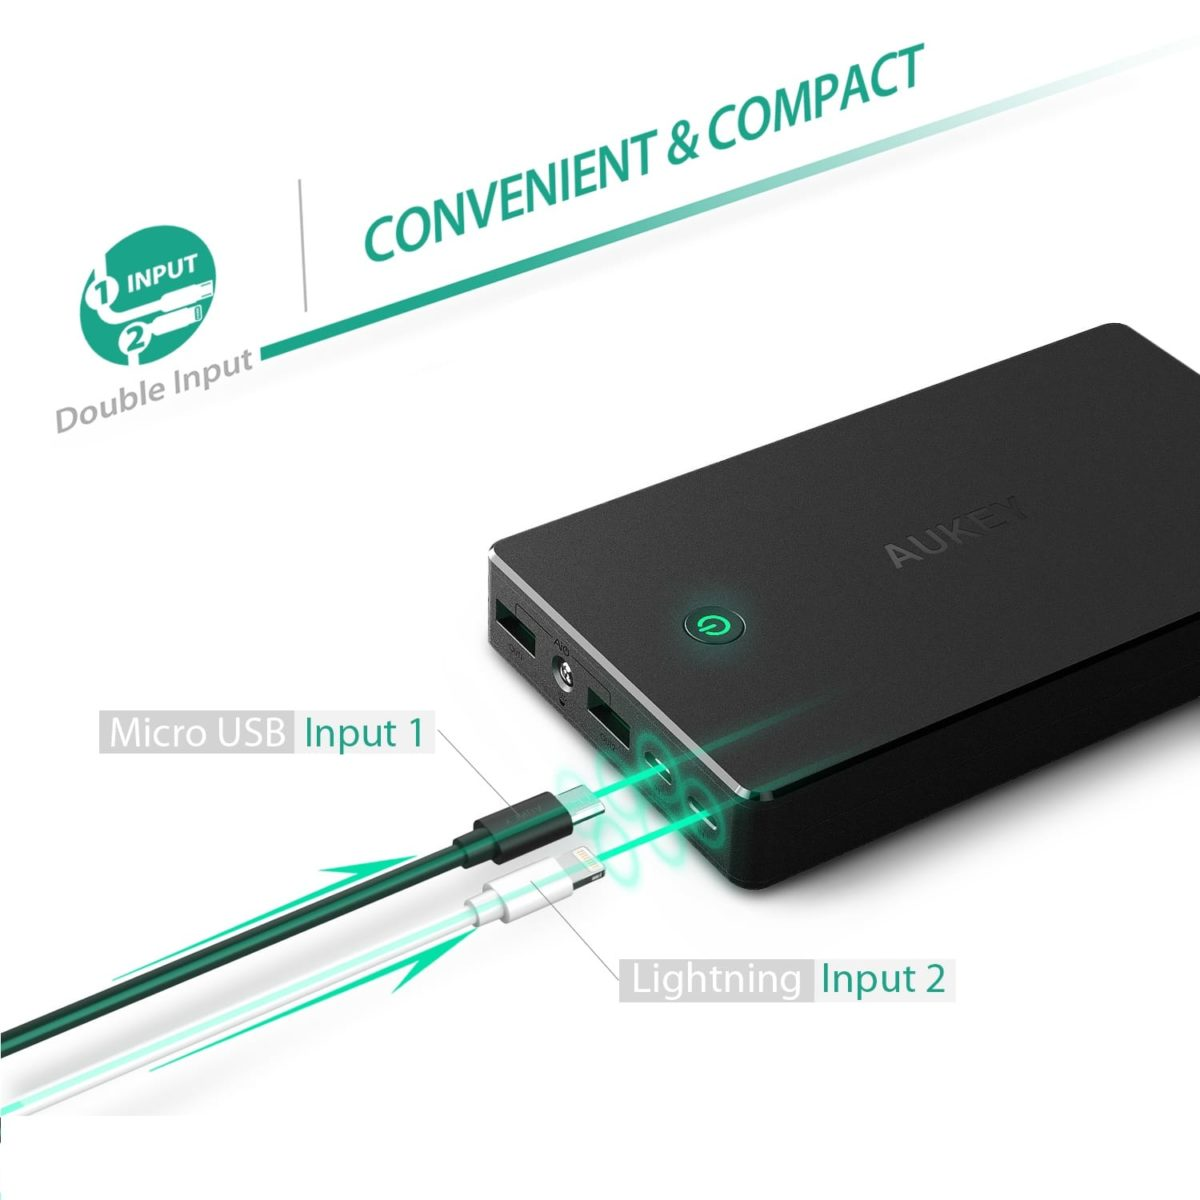 http://s3-eu-central-1.amazonaws.com/images.aukeypowerbanks.gr/wp/wp-content/uploads/2017/02/12192212/aukey-power-bank-20000-t10-lightning-1200x1200.jpg